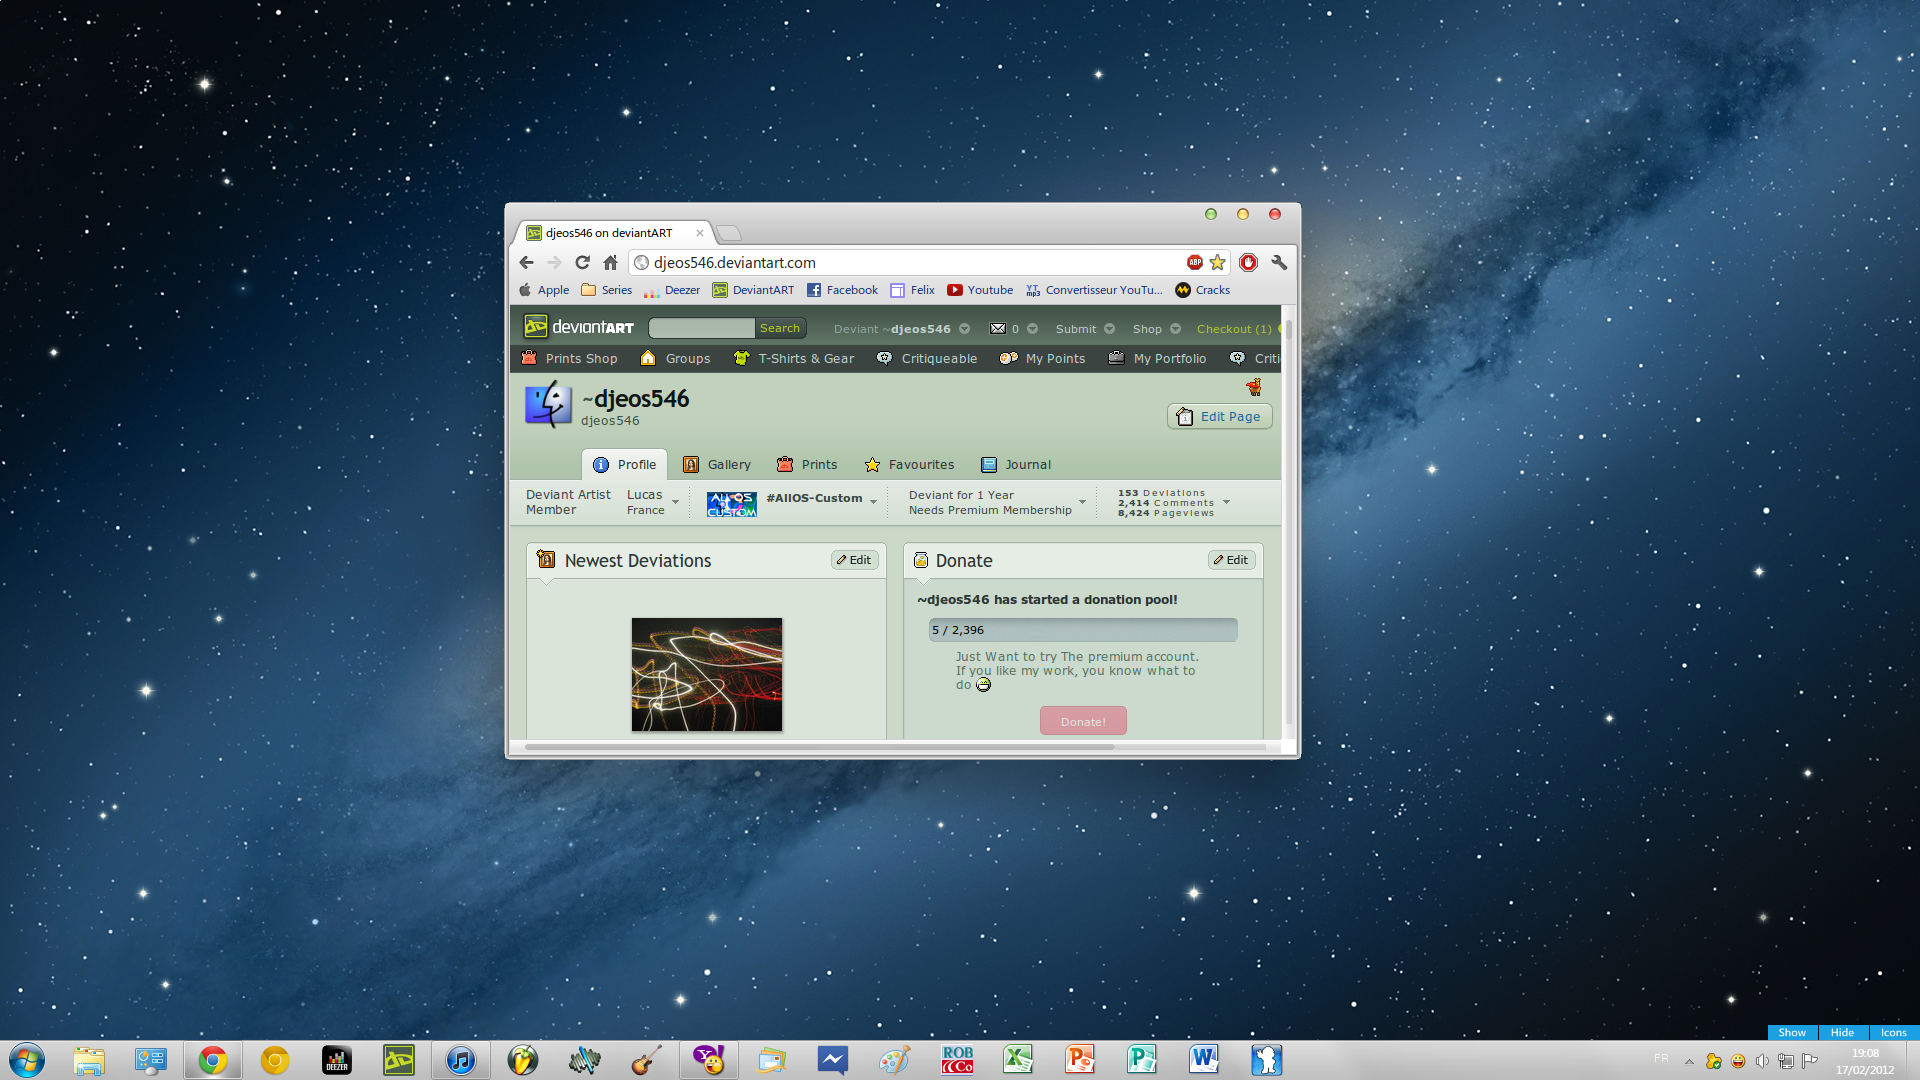 Osx mountain lion theme/ transformation pack for windows 7 and.